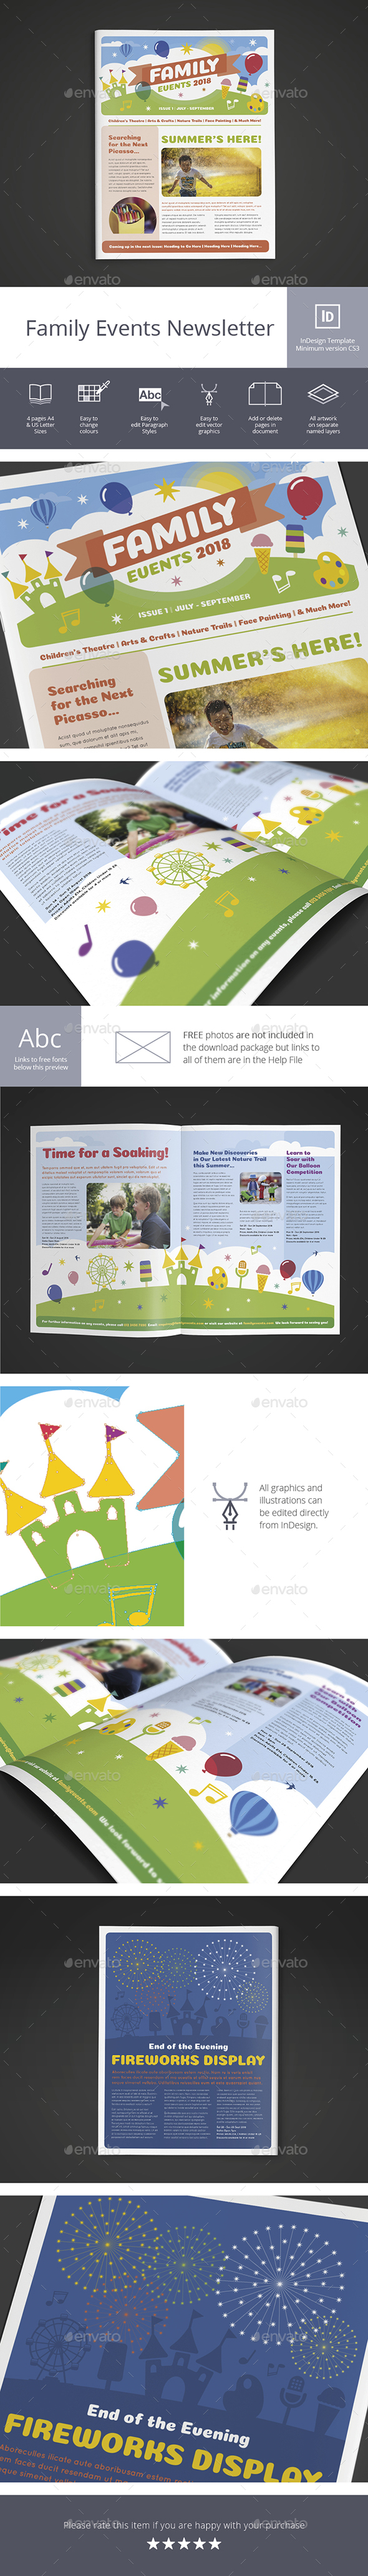 Family Events Newsletter - Newsletters Print Templates